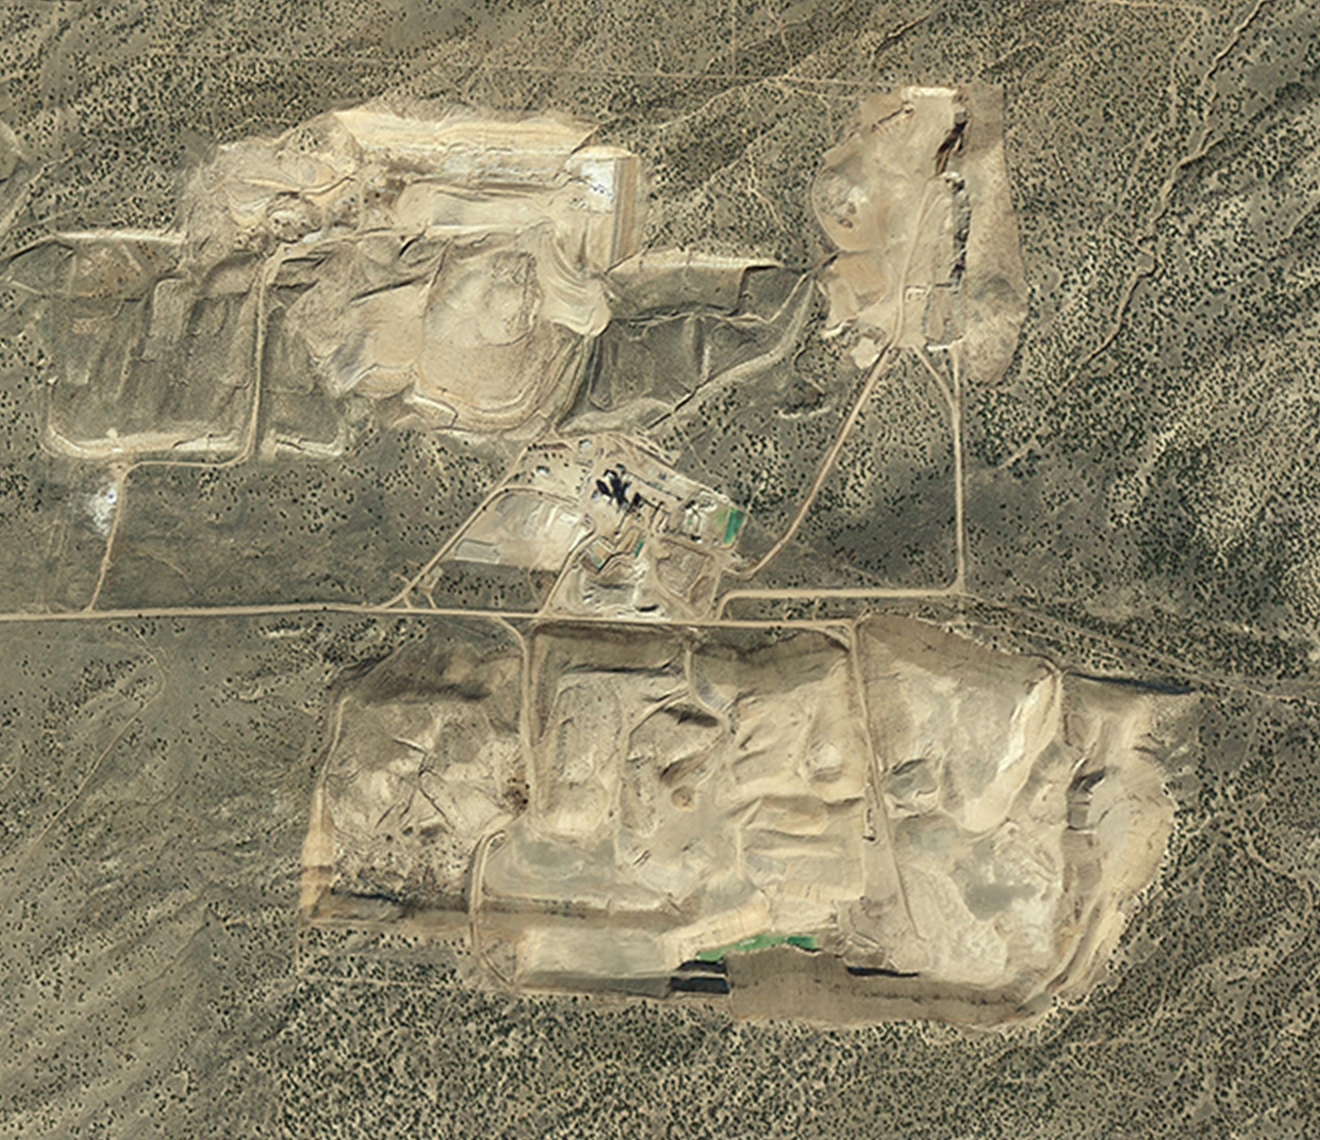 Aerial image of plant and mine, featuring 50+ years of reserves.